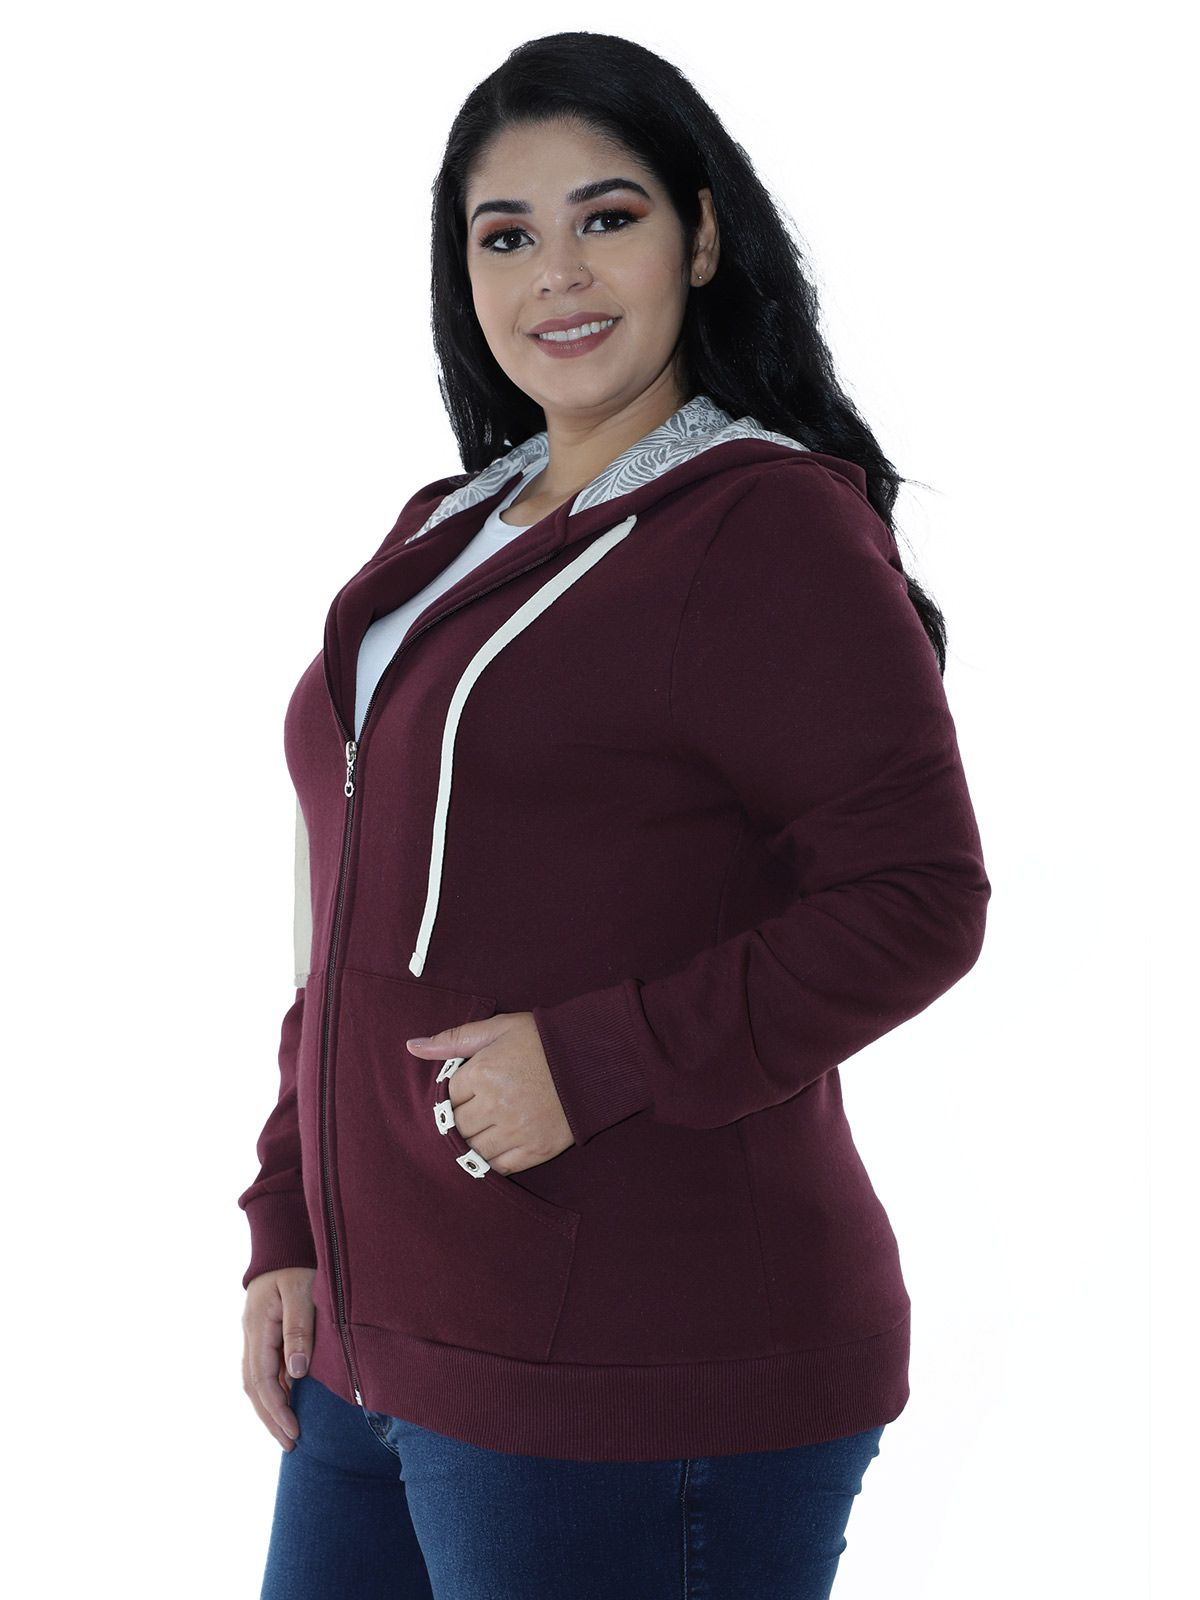 Casaco Plus Size de Moletom Forro do Capuz Estampado Bordo